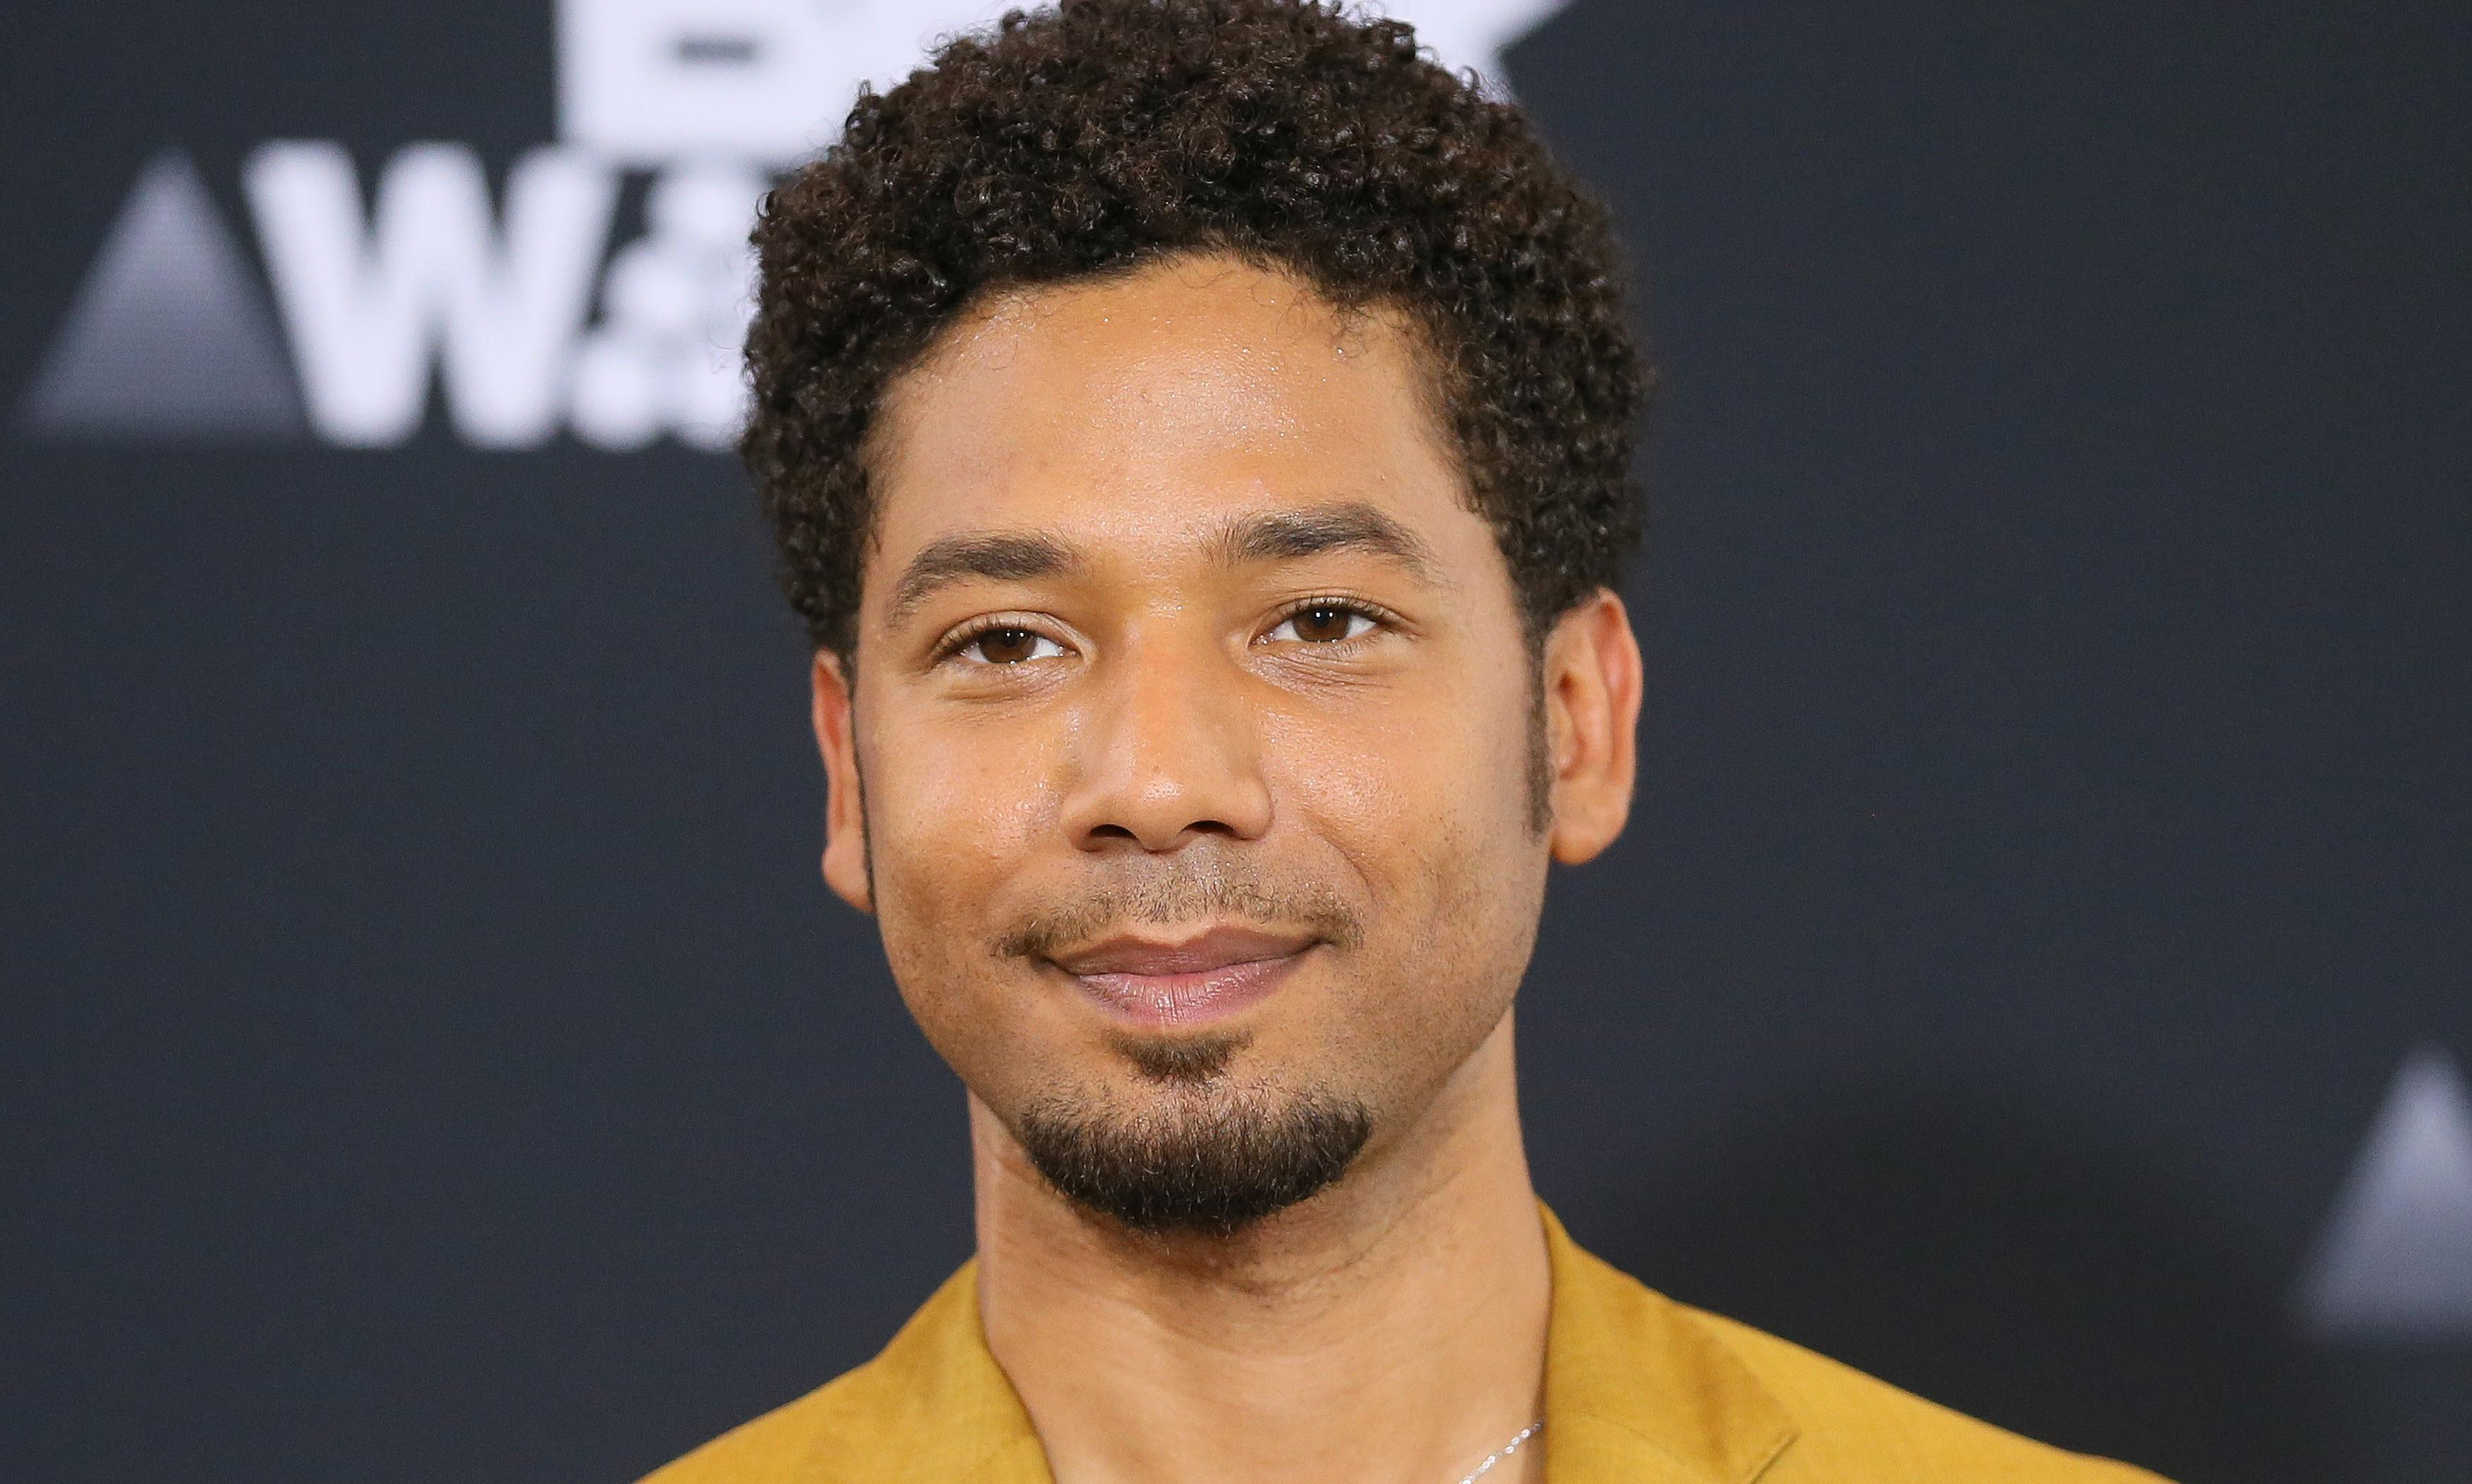 Jussie Smollett charged: actor accused of filing false report in alleged attack